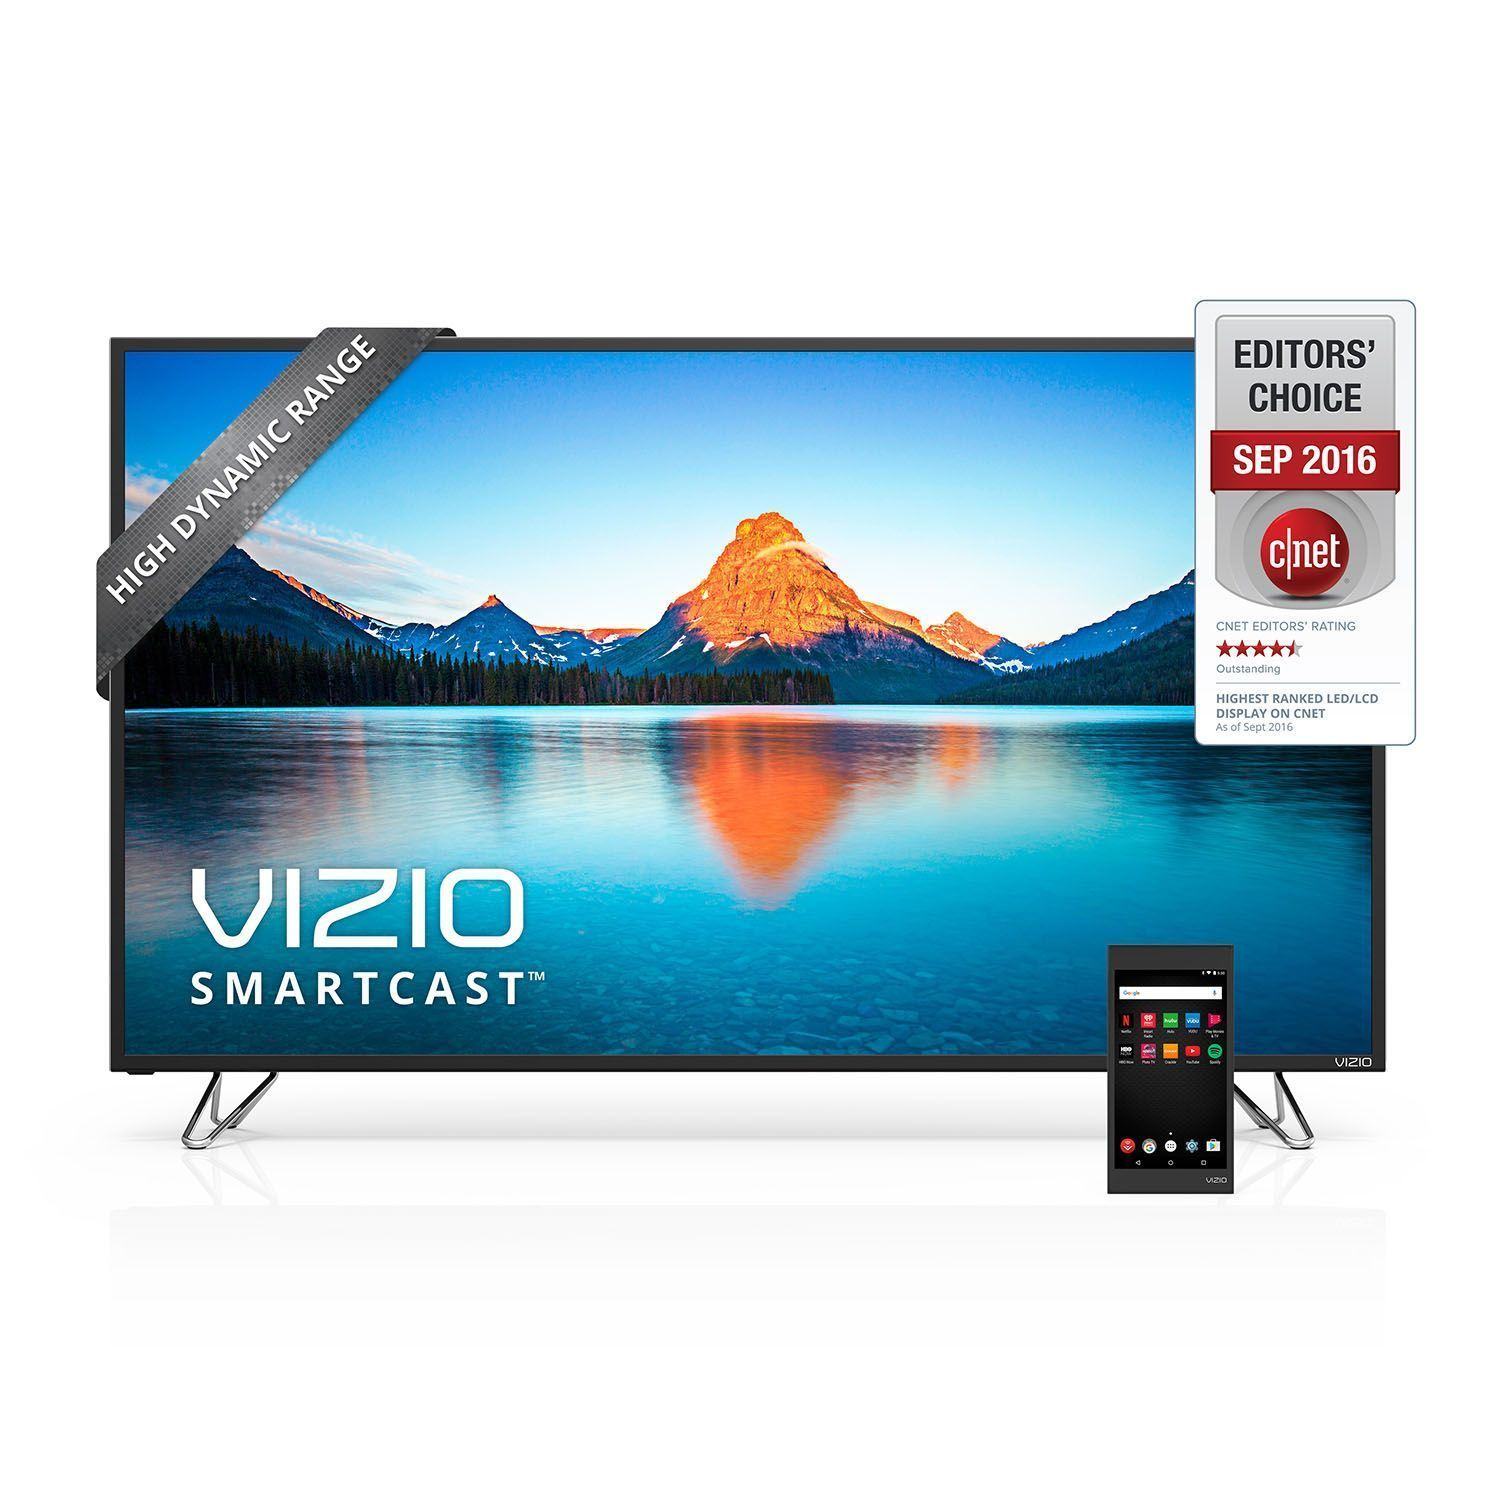 VIZIO SmartCast 55 Class Ultra HD HDR Home Theater Display